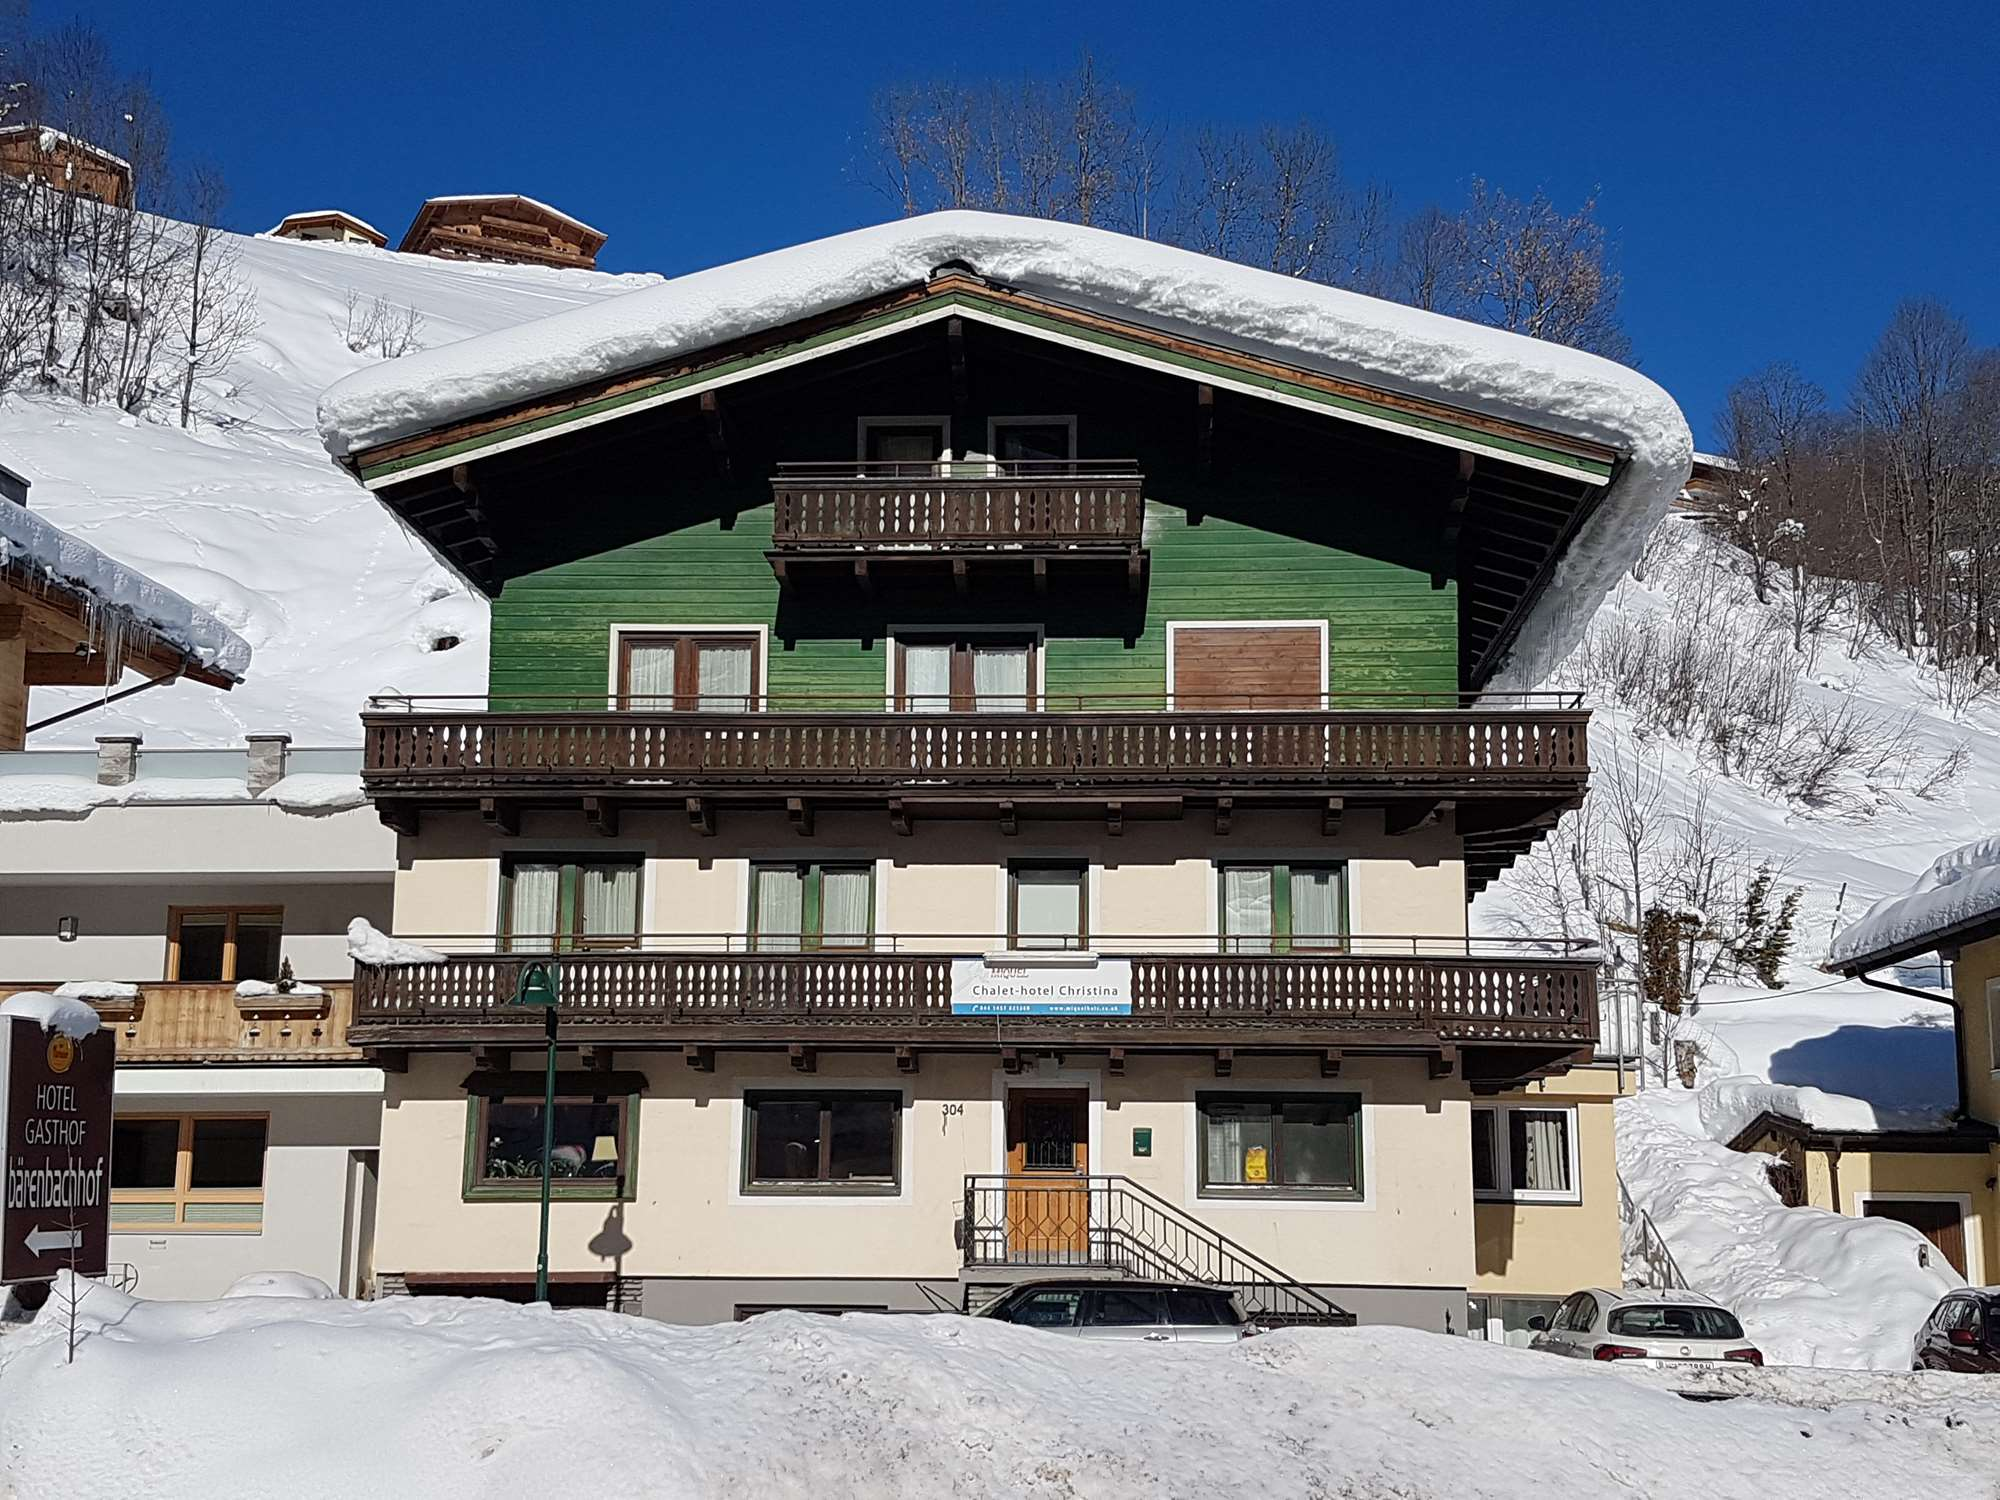 Chalet-Hotel Christina in Saalbach